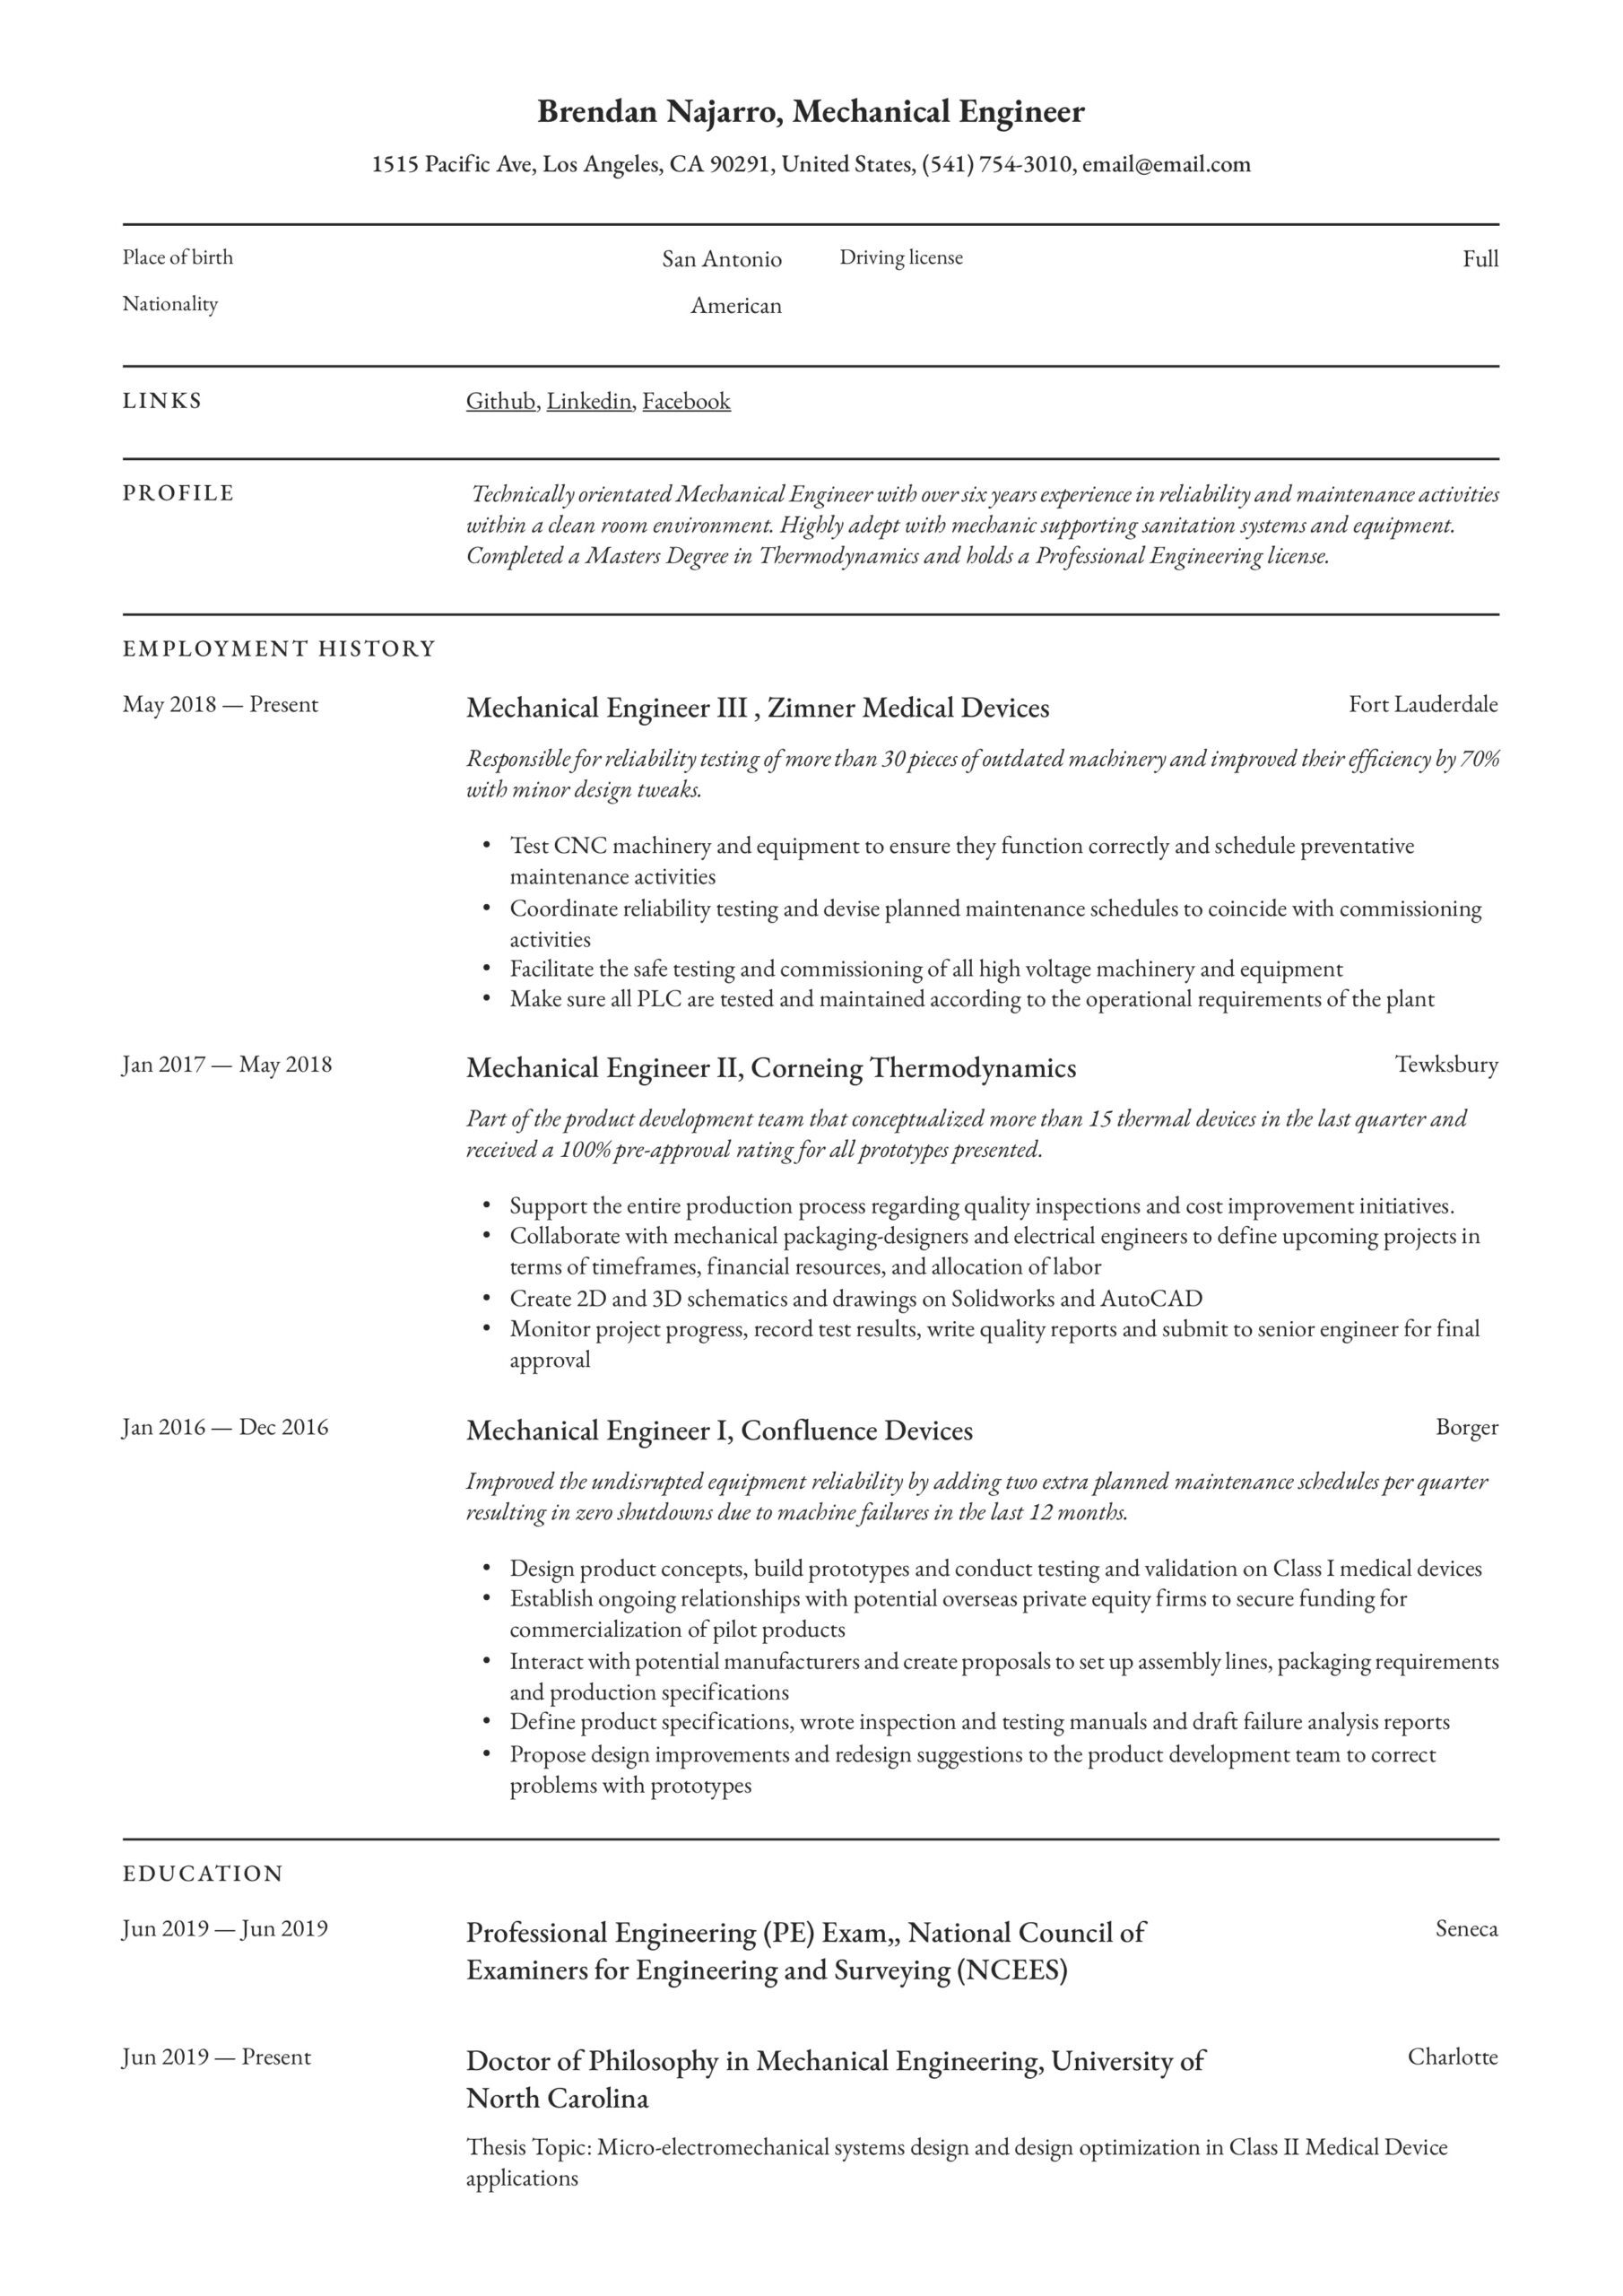 mechanical engineer resume writing guide templates pdf professional summary for Resume Professional Summary For Engineering Resume